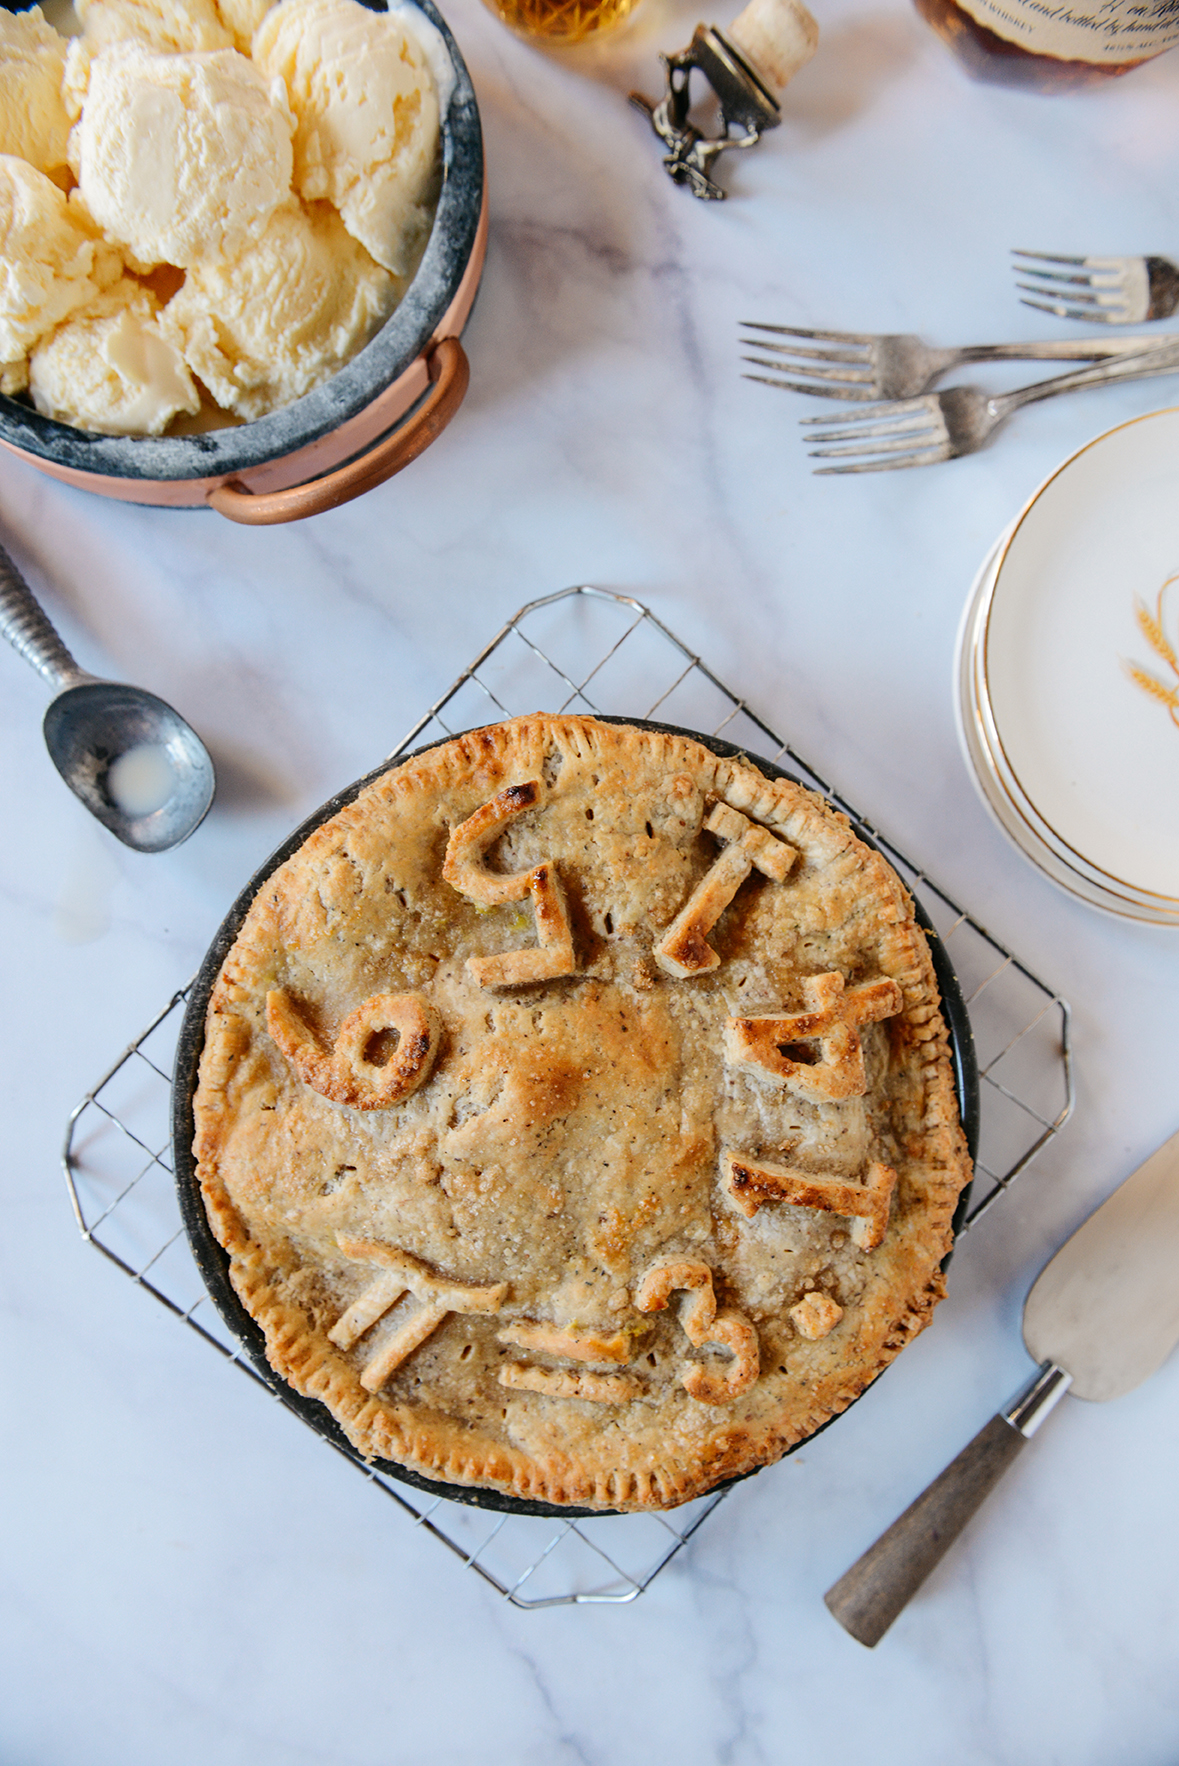 Spiced Apple Pie with a Chai Flavored Whole Grain Crust for Pi(e) Day